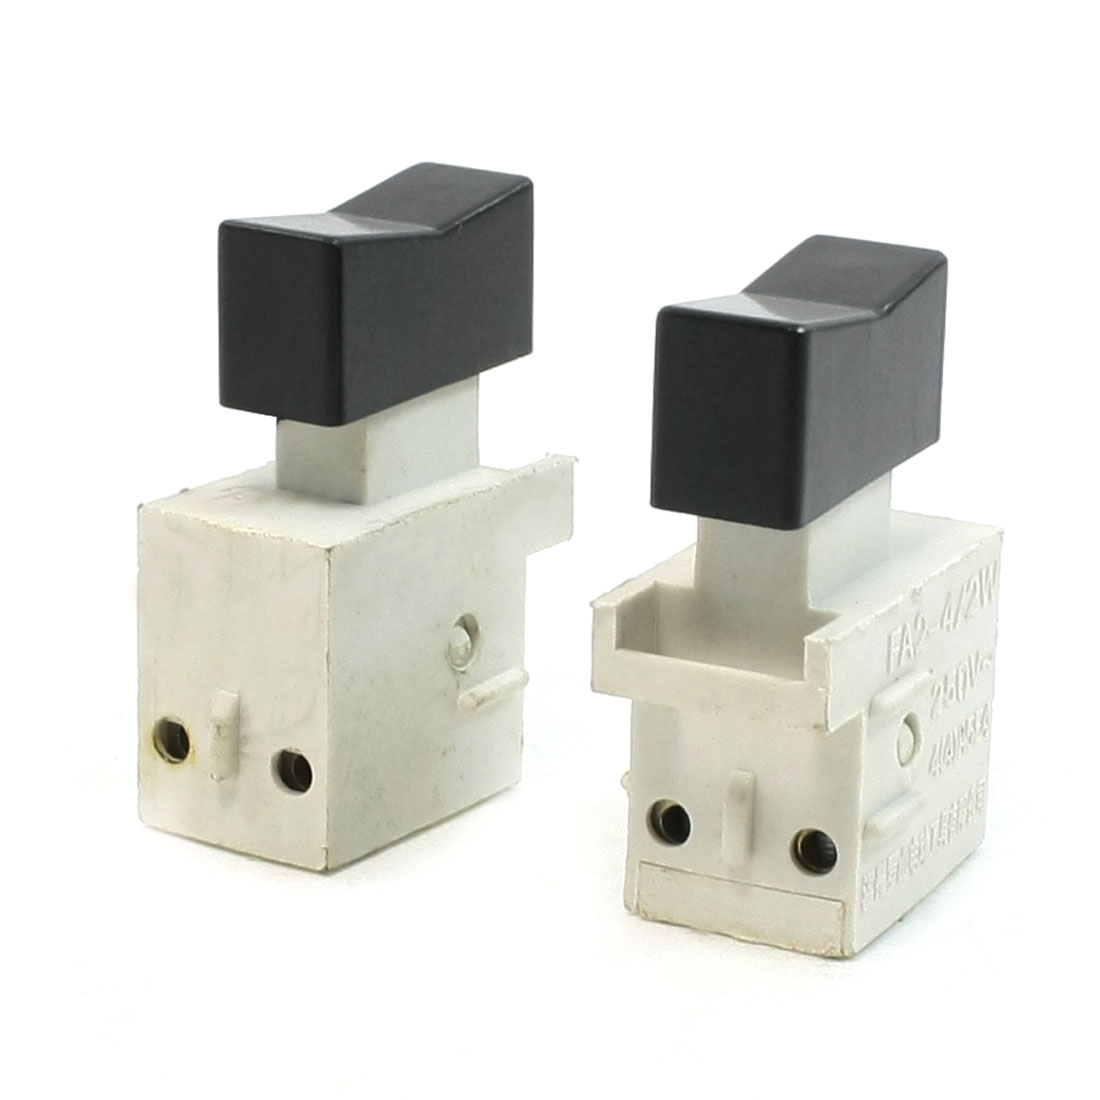 2 Pcs DPST Push Button Trigger Switch AC 250V 4A for Power Tool